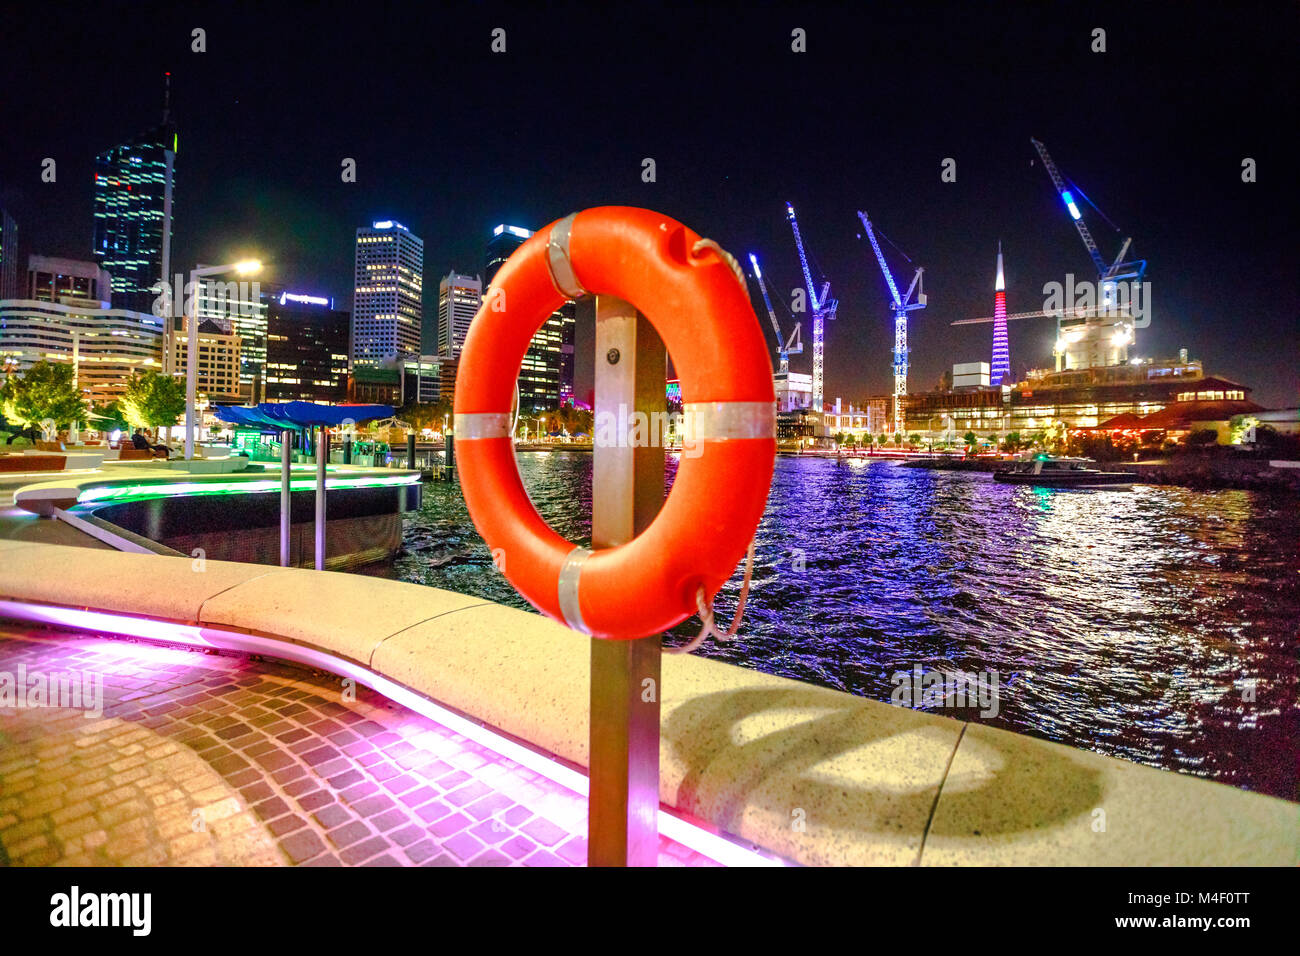 Red life preserver on foreground on walkway of Elizabeth Quay Marina in Perth Downtown, Western Australia. Esplanade Stock Photo